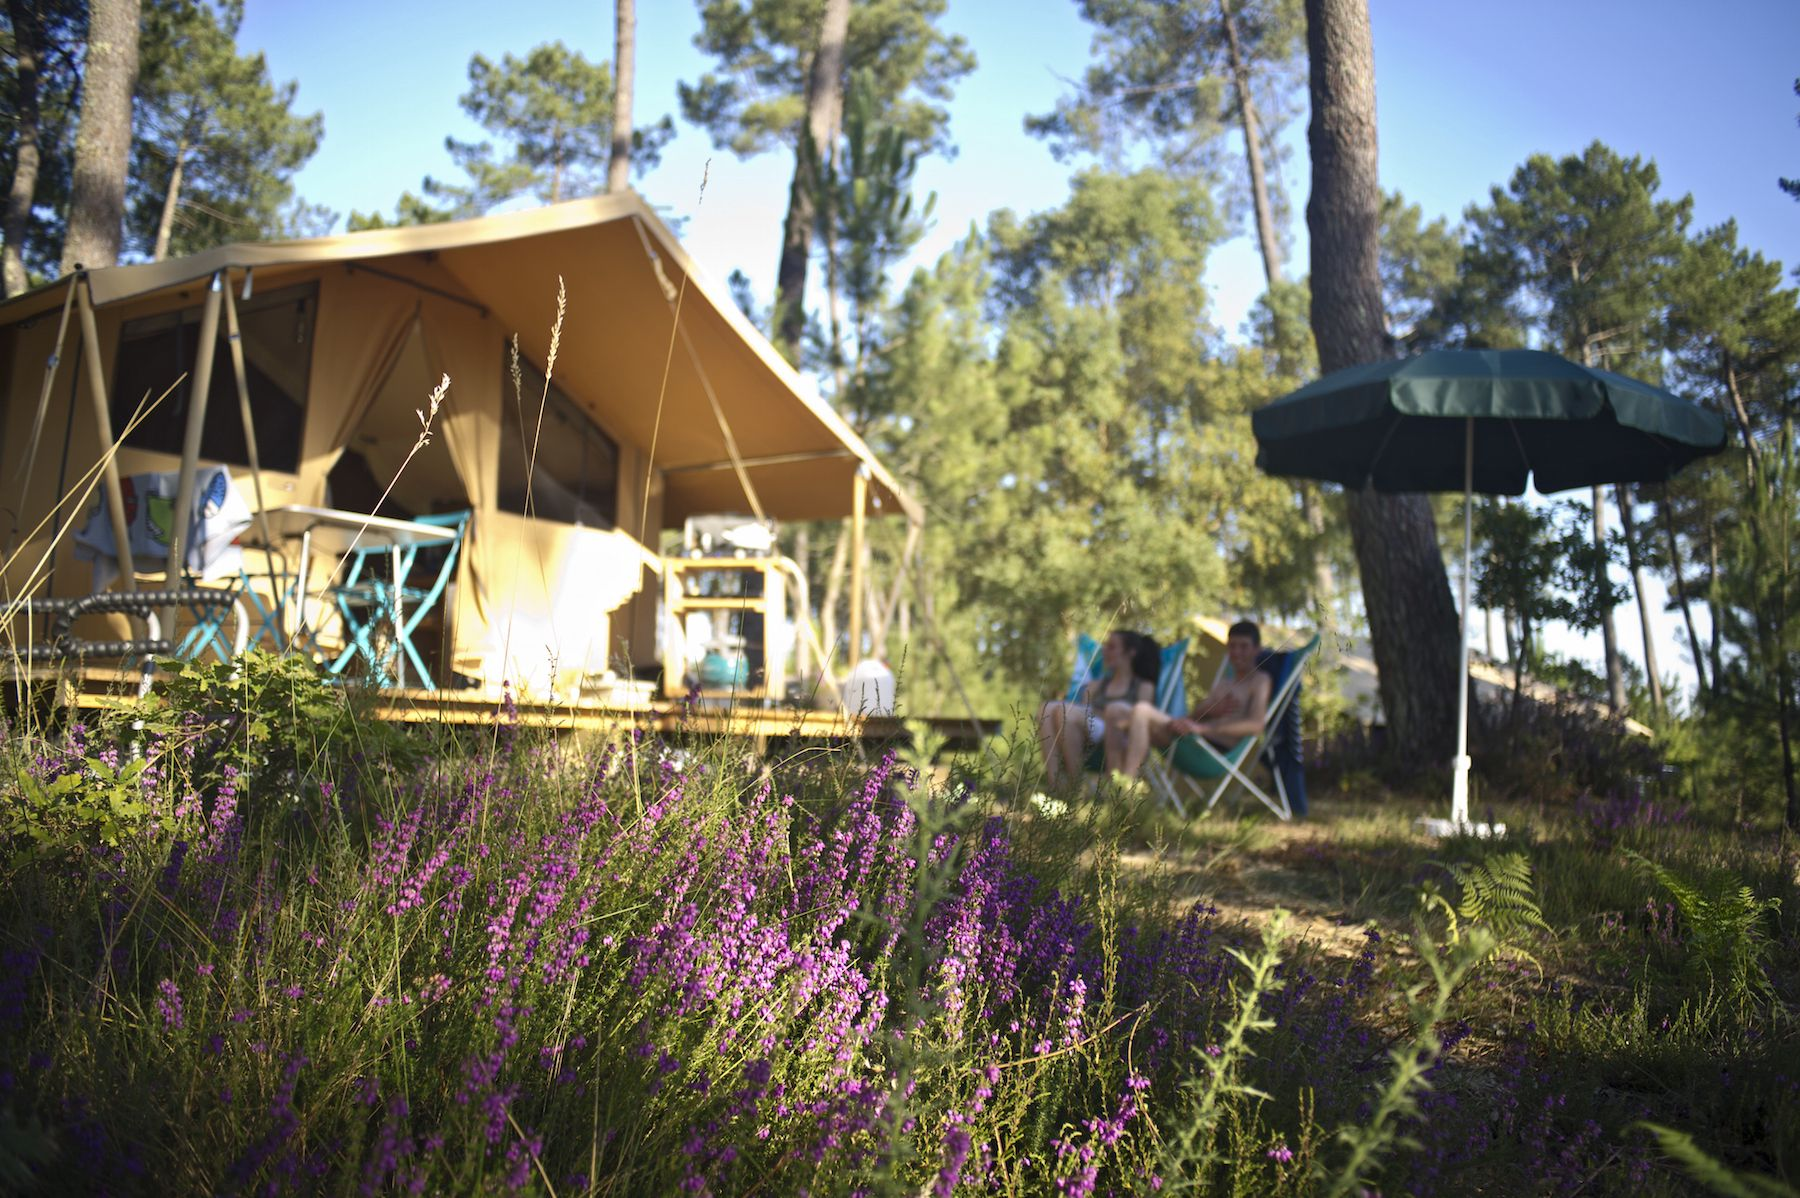 A modern campsite with bucket loads of facilities set in a natural, riverside woodland just a few miles from France's Atlantic coast.